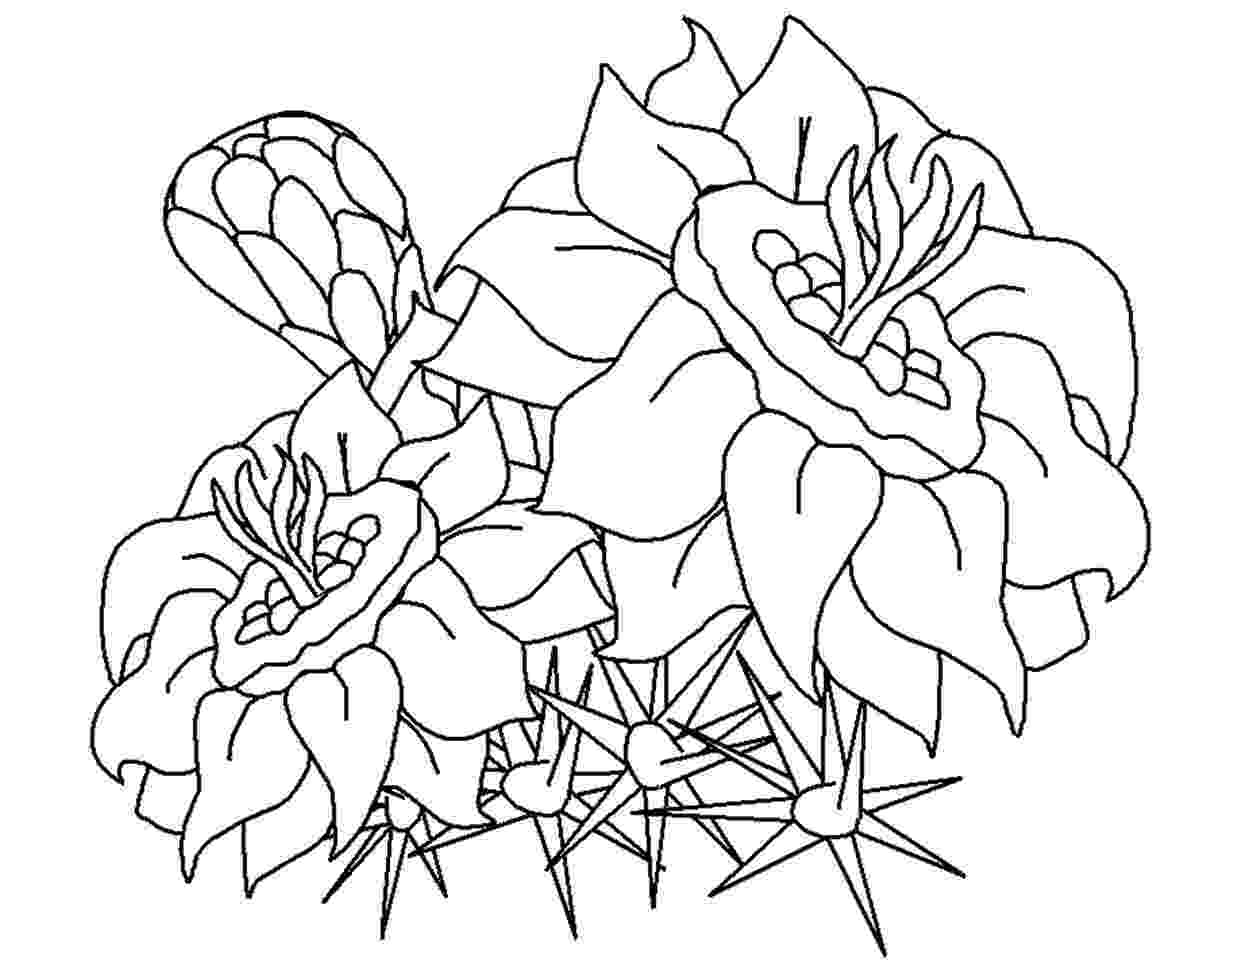 pictures of flowers to color free printables free printable flower coloring pages for kids best color flowers of pictures to free printables